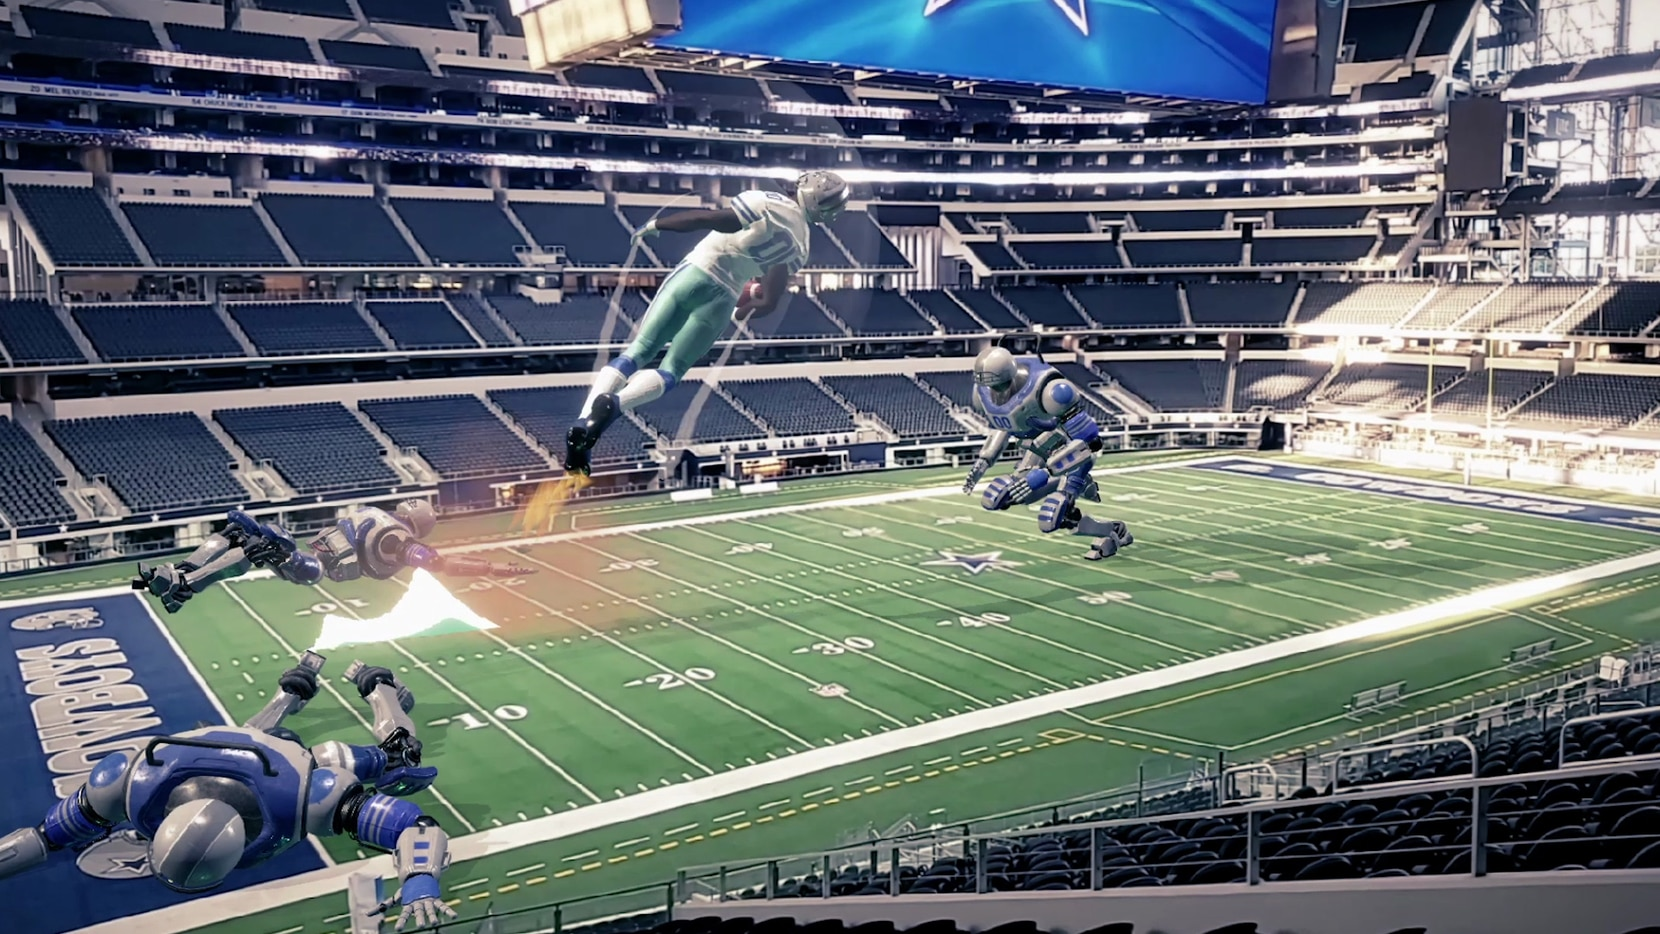 A rendering of the larger-than-life augmented reality game that will be available to Cowboys fans using the latest Samsung Galaxy phones.